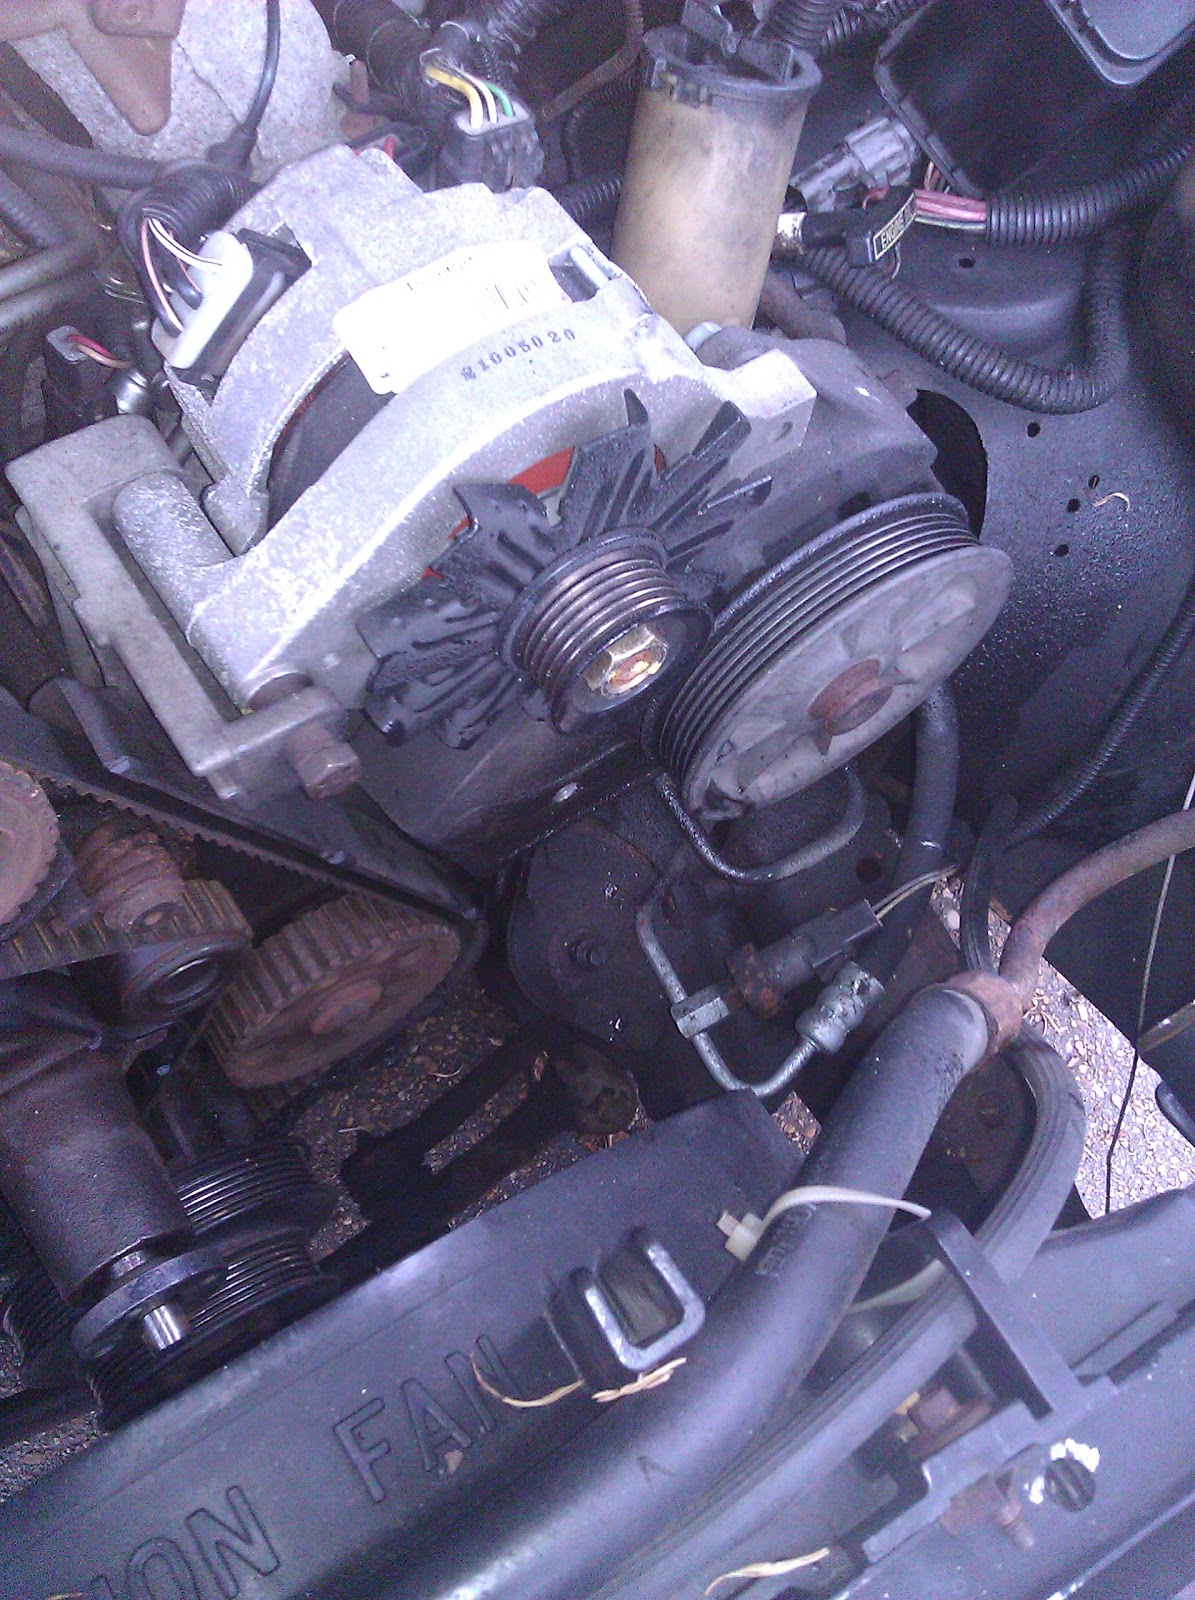 91 ford ranger service tricks  tips  diagrams and other 1991 ford ranger alternator wiring 1991 ford ranger alternator wiring 1991 ford ranger alternator wiring 1991 ford ranger alternator wiring